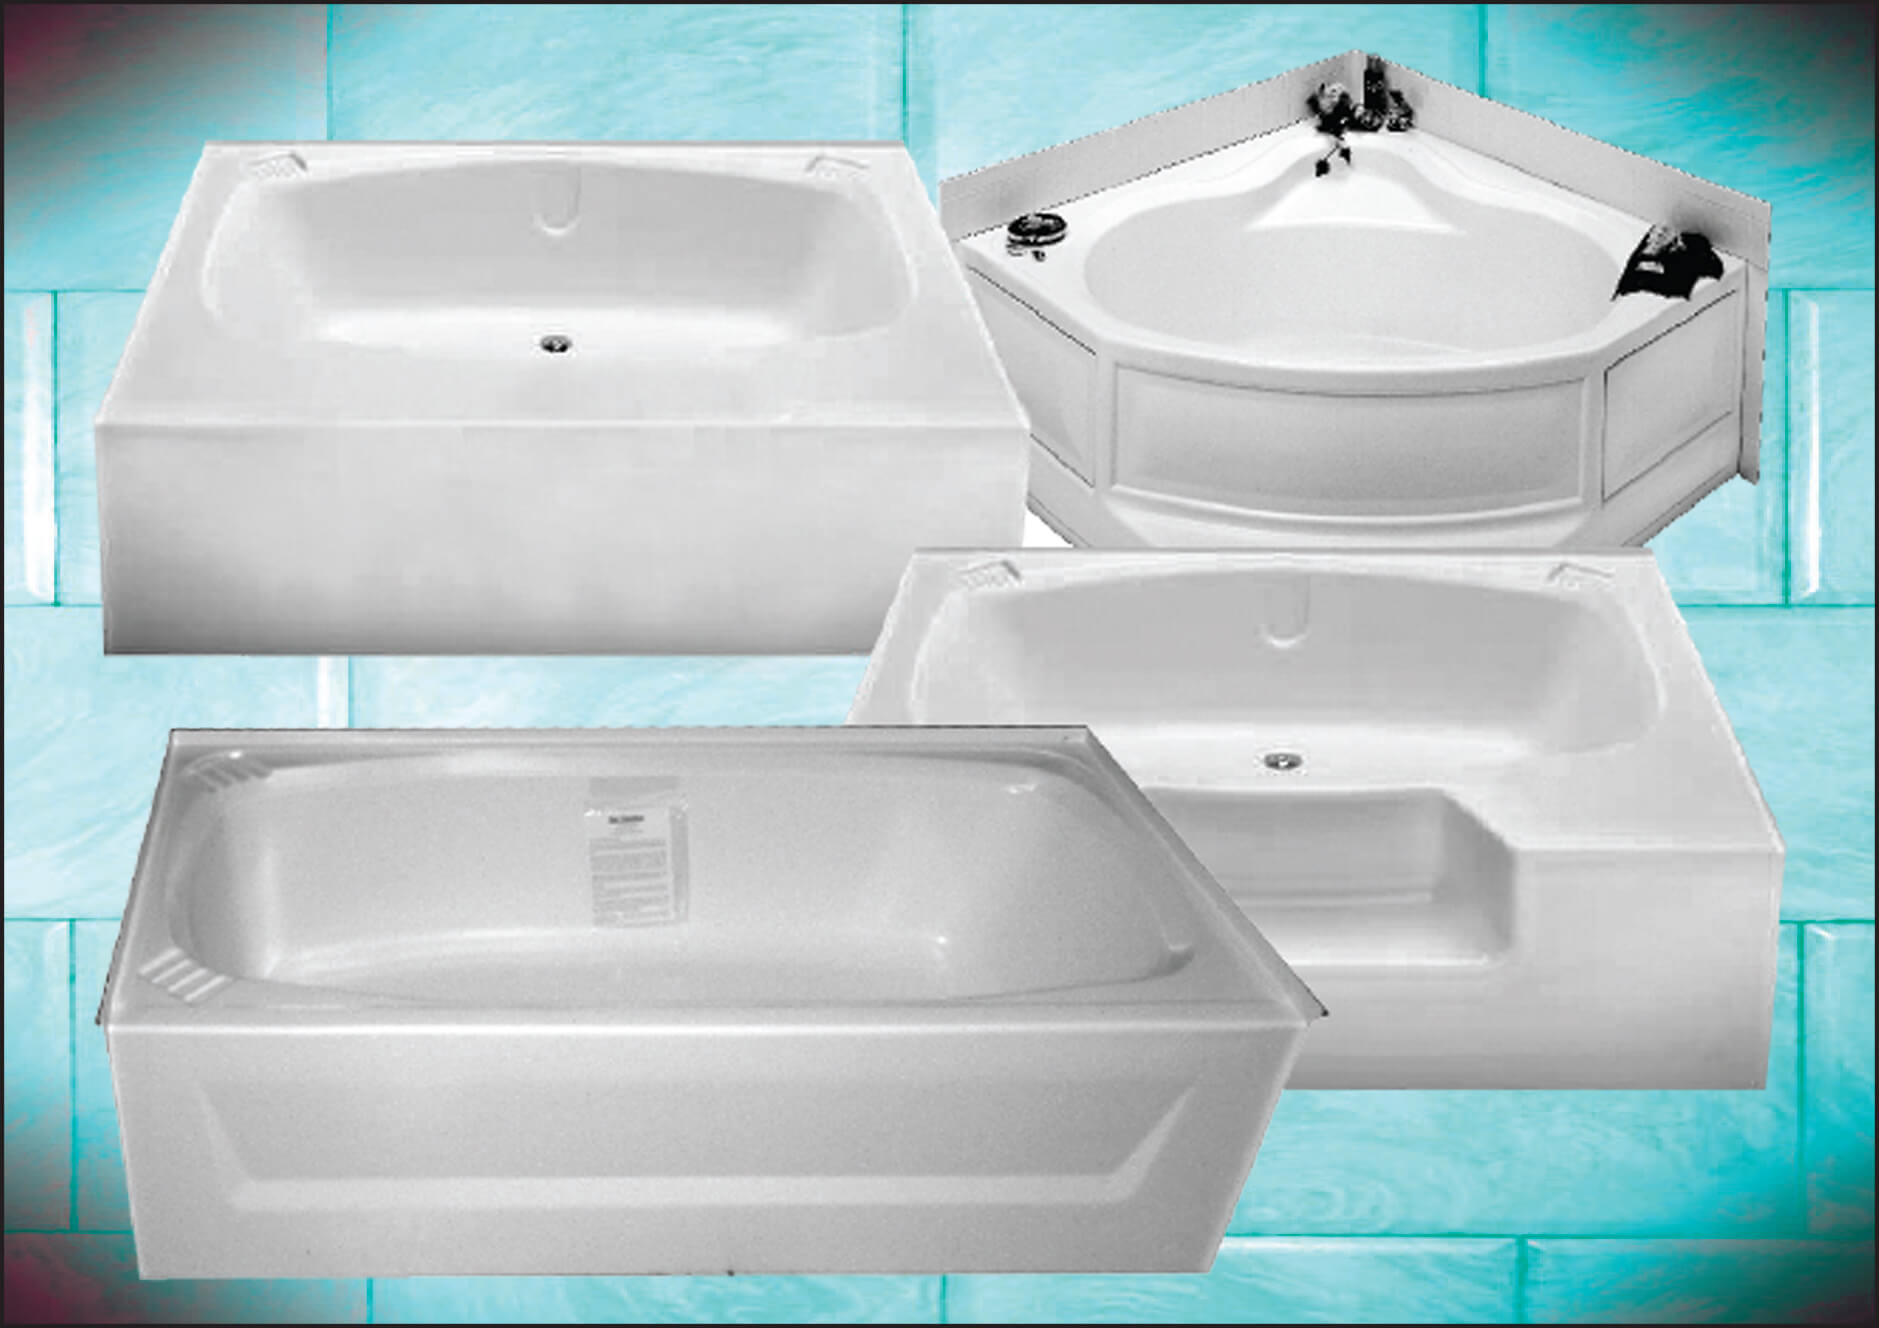 ABS Tubs & Surrounds